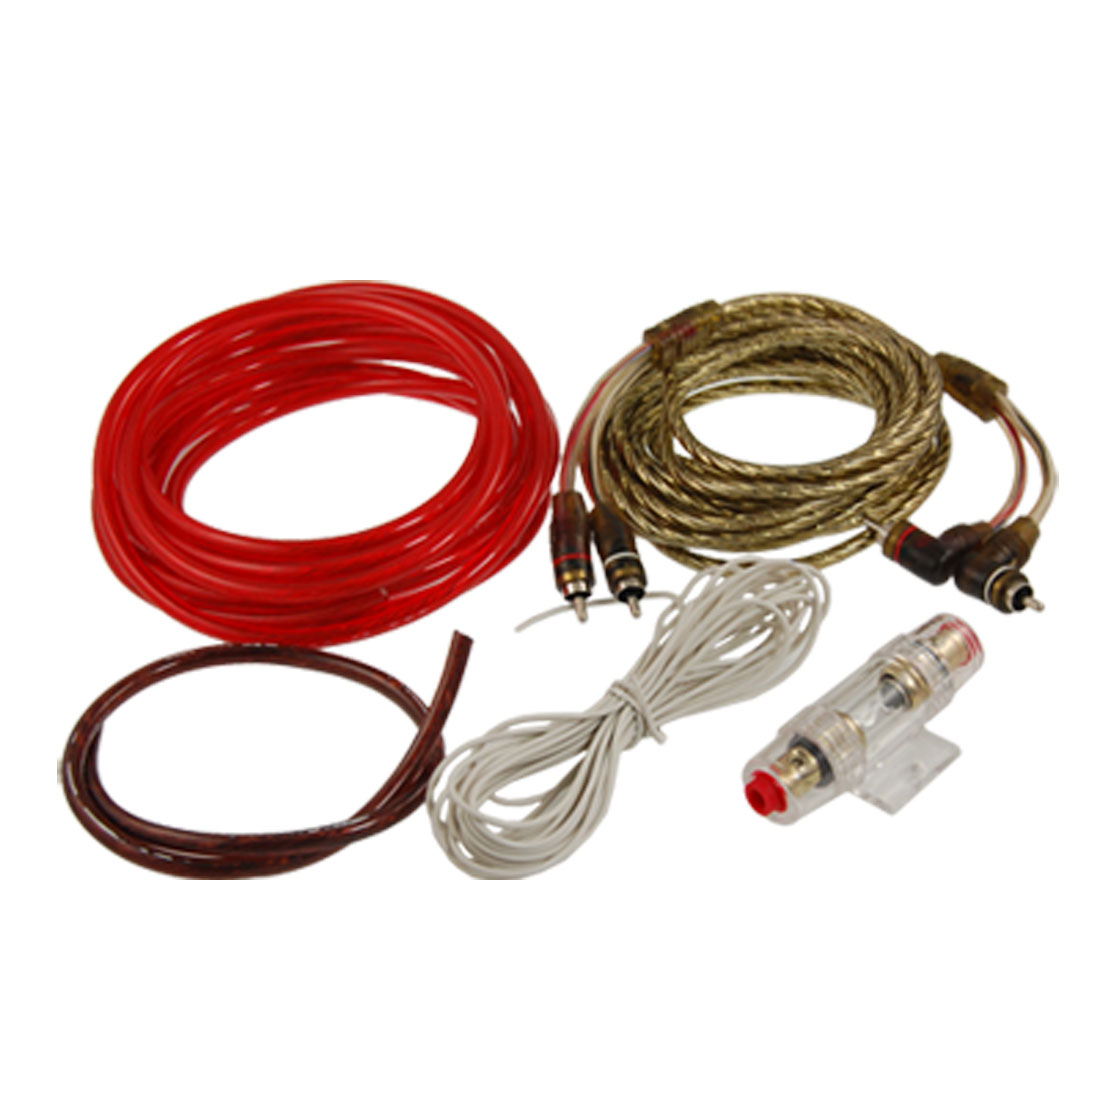 hight resolution of car audio 4 pcs cables fuse holder amplifier wiring kit walmart com audio amplifier kit car audio wiring kit walmart